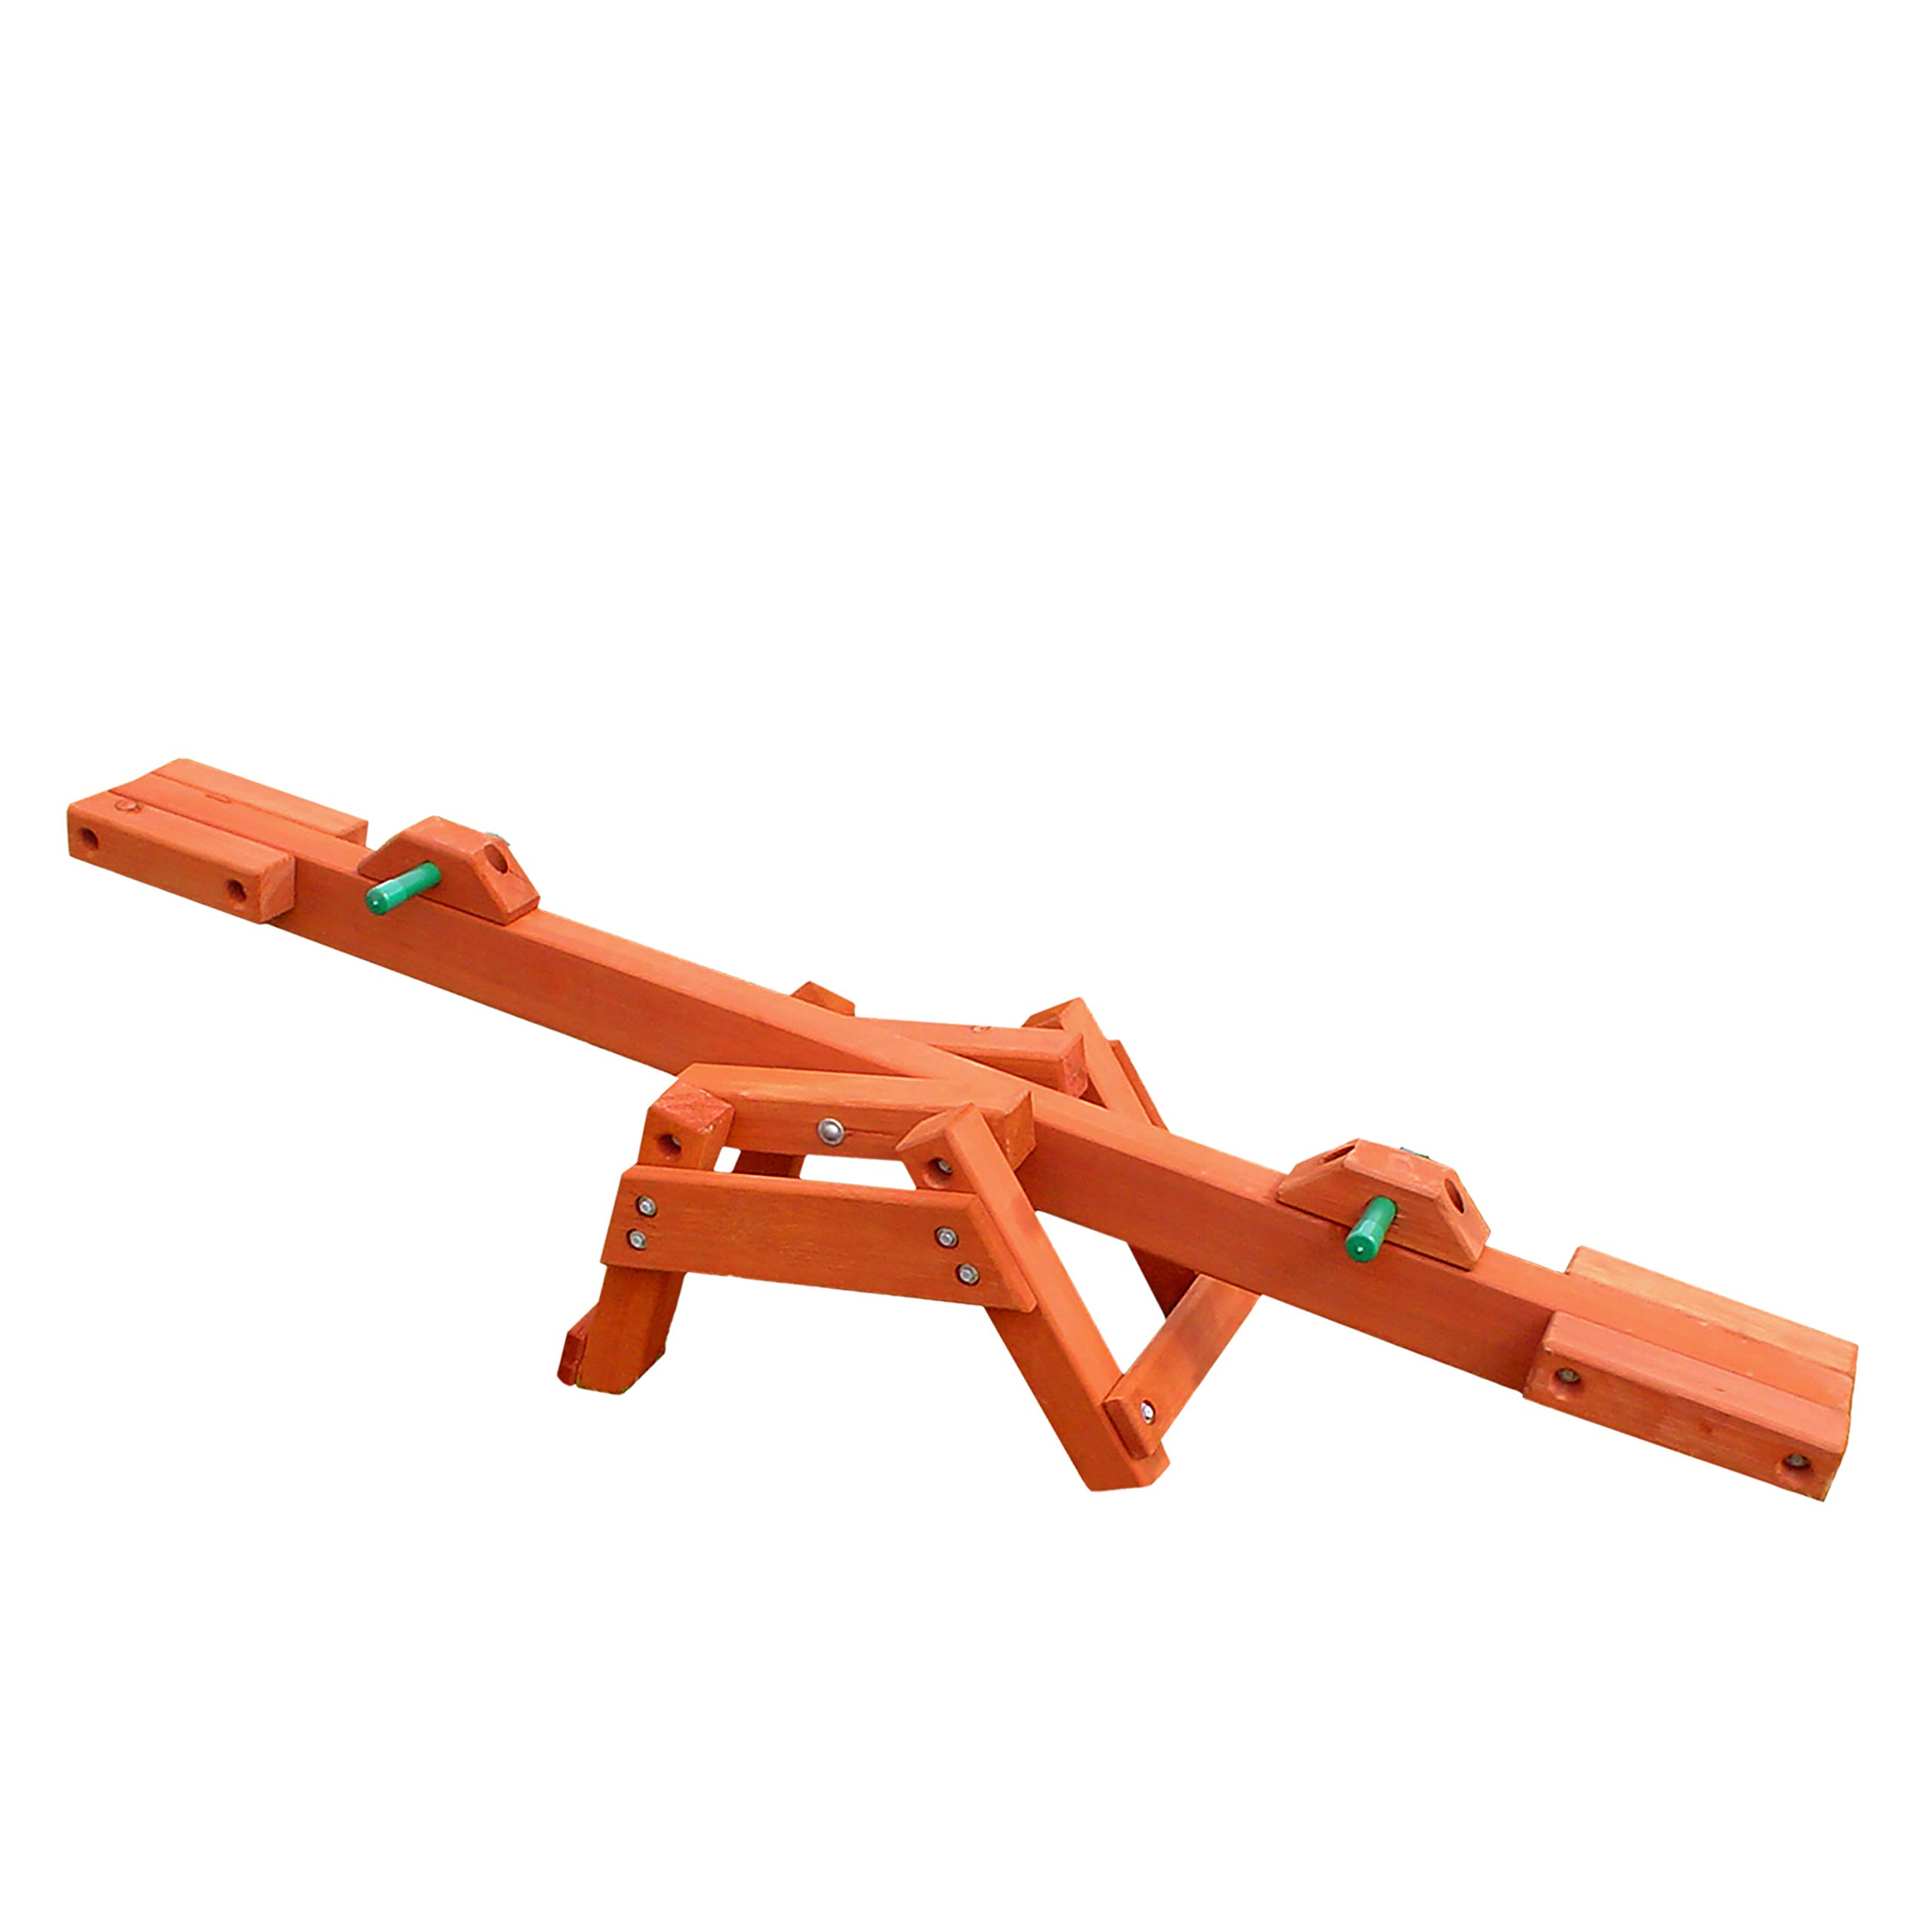 Gorilla Playsets See-Saw